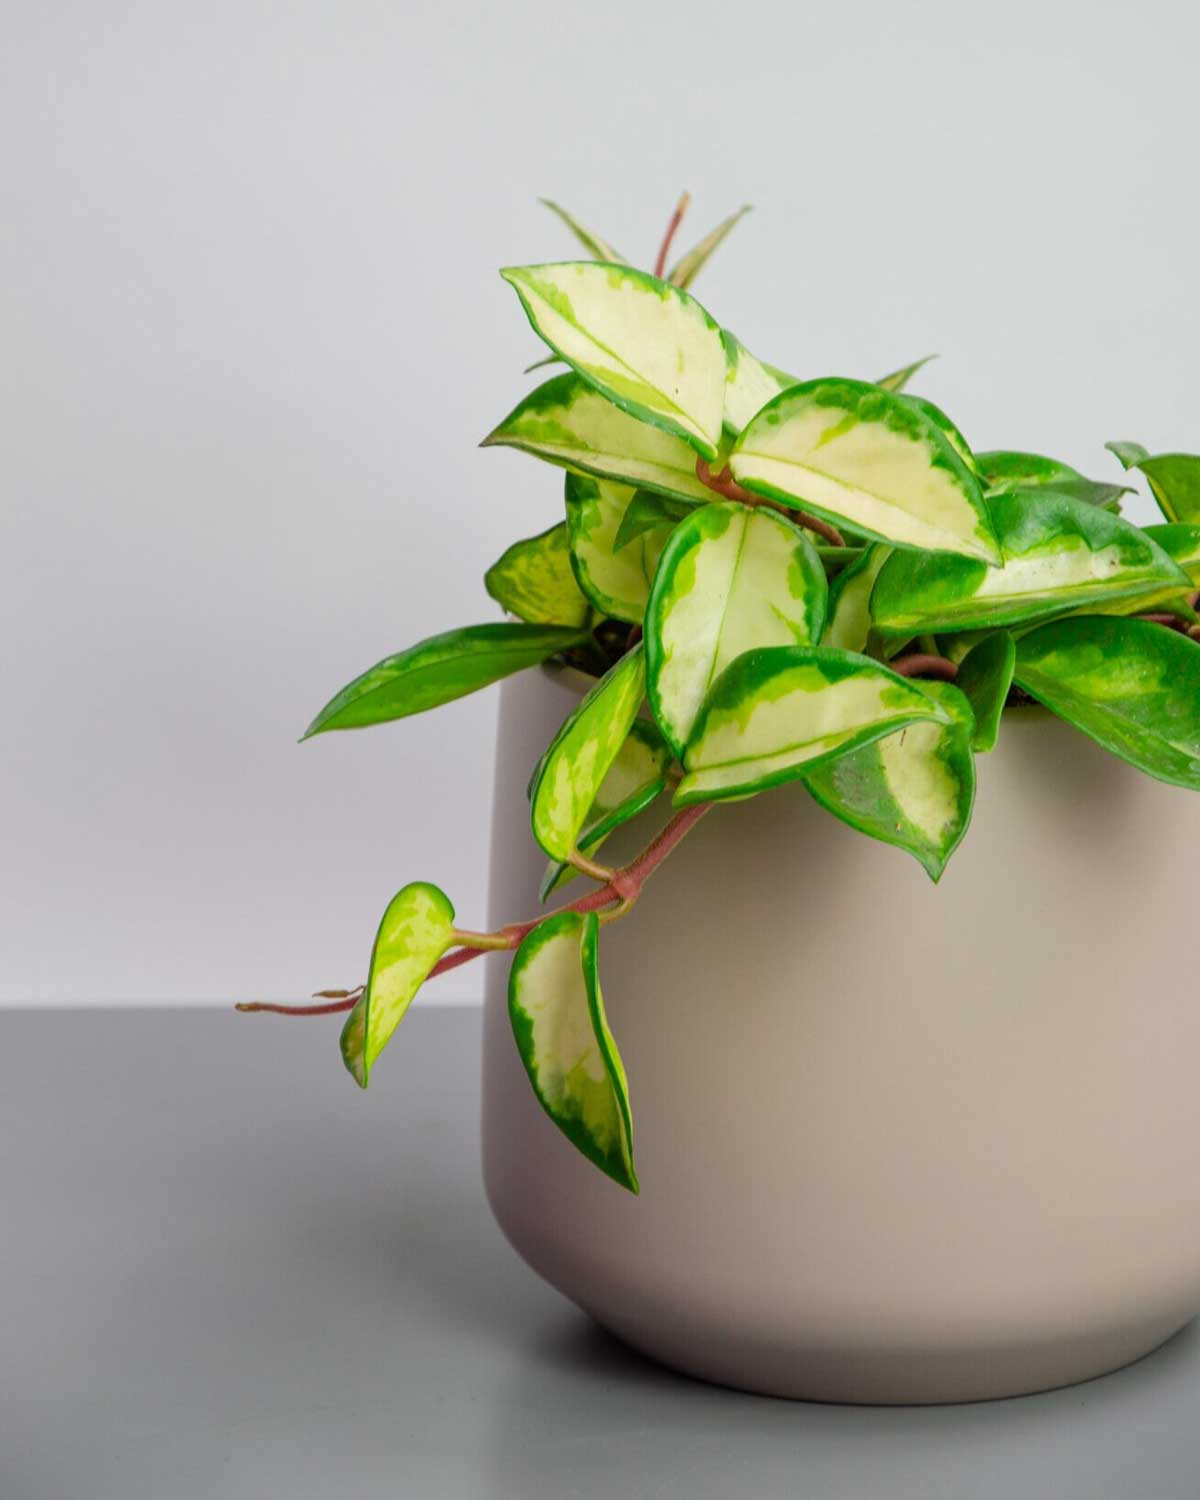 How To Look After A Hoya Houseplant